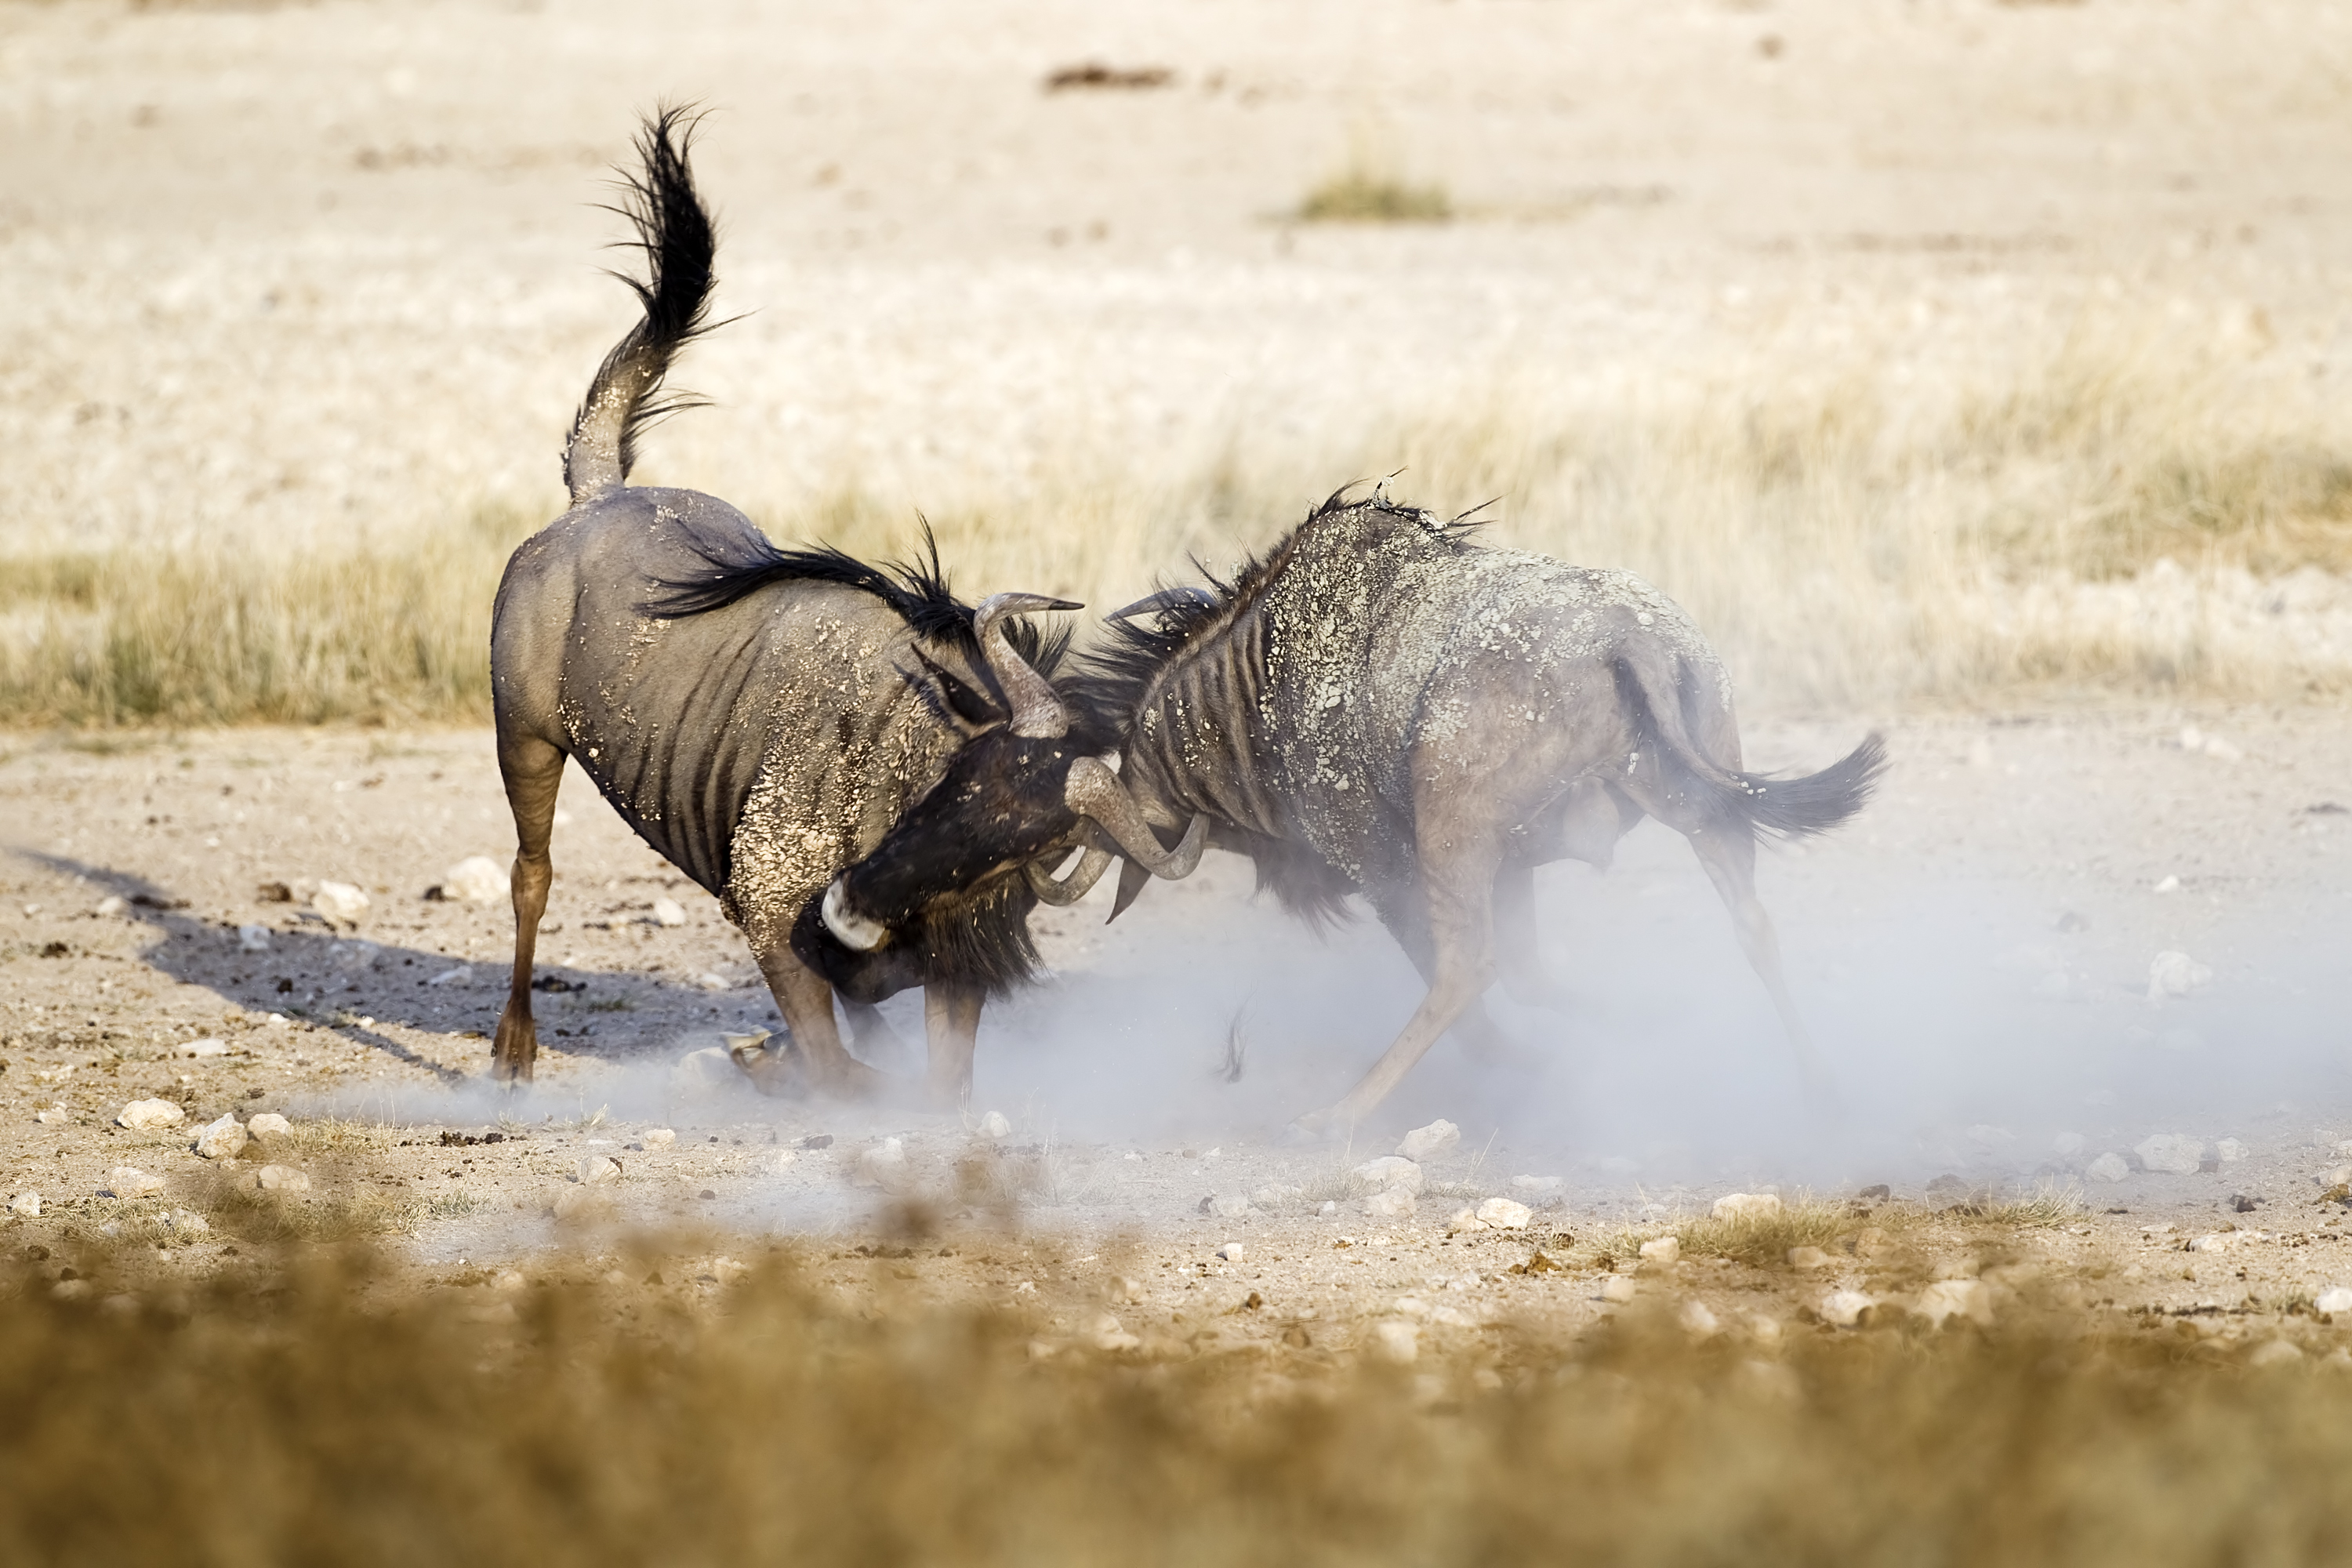 File:2012-wildebeest-fight.jpg - Wikimedia Commons